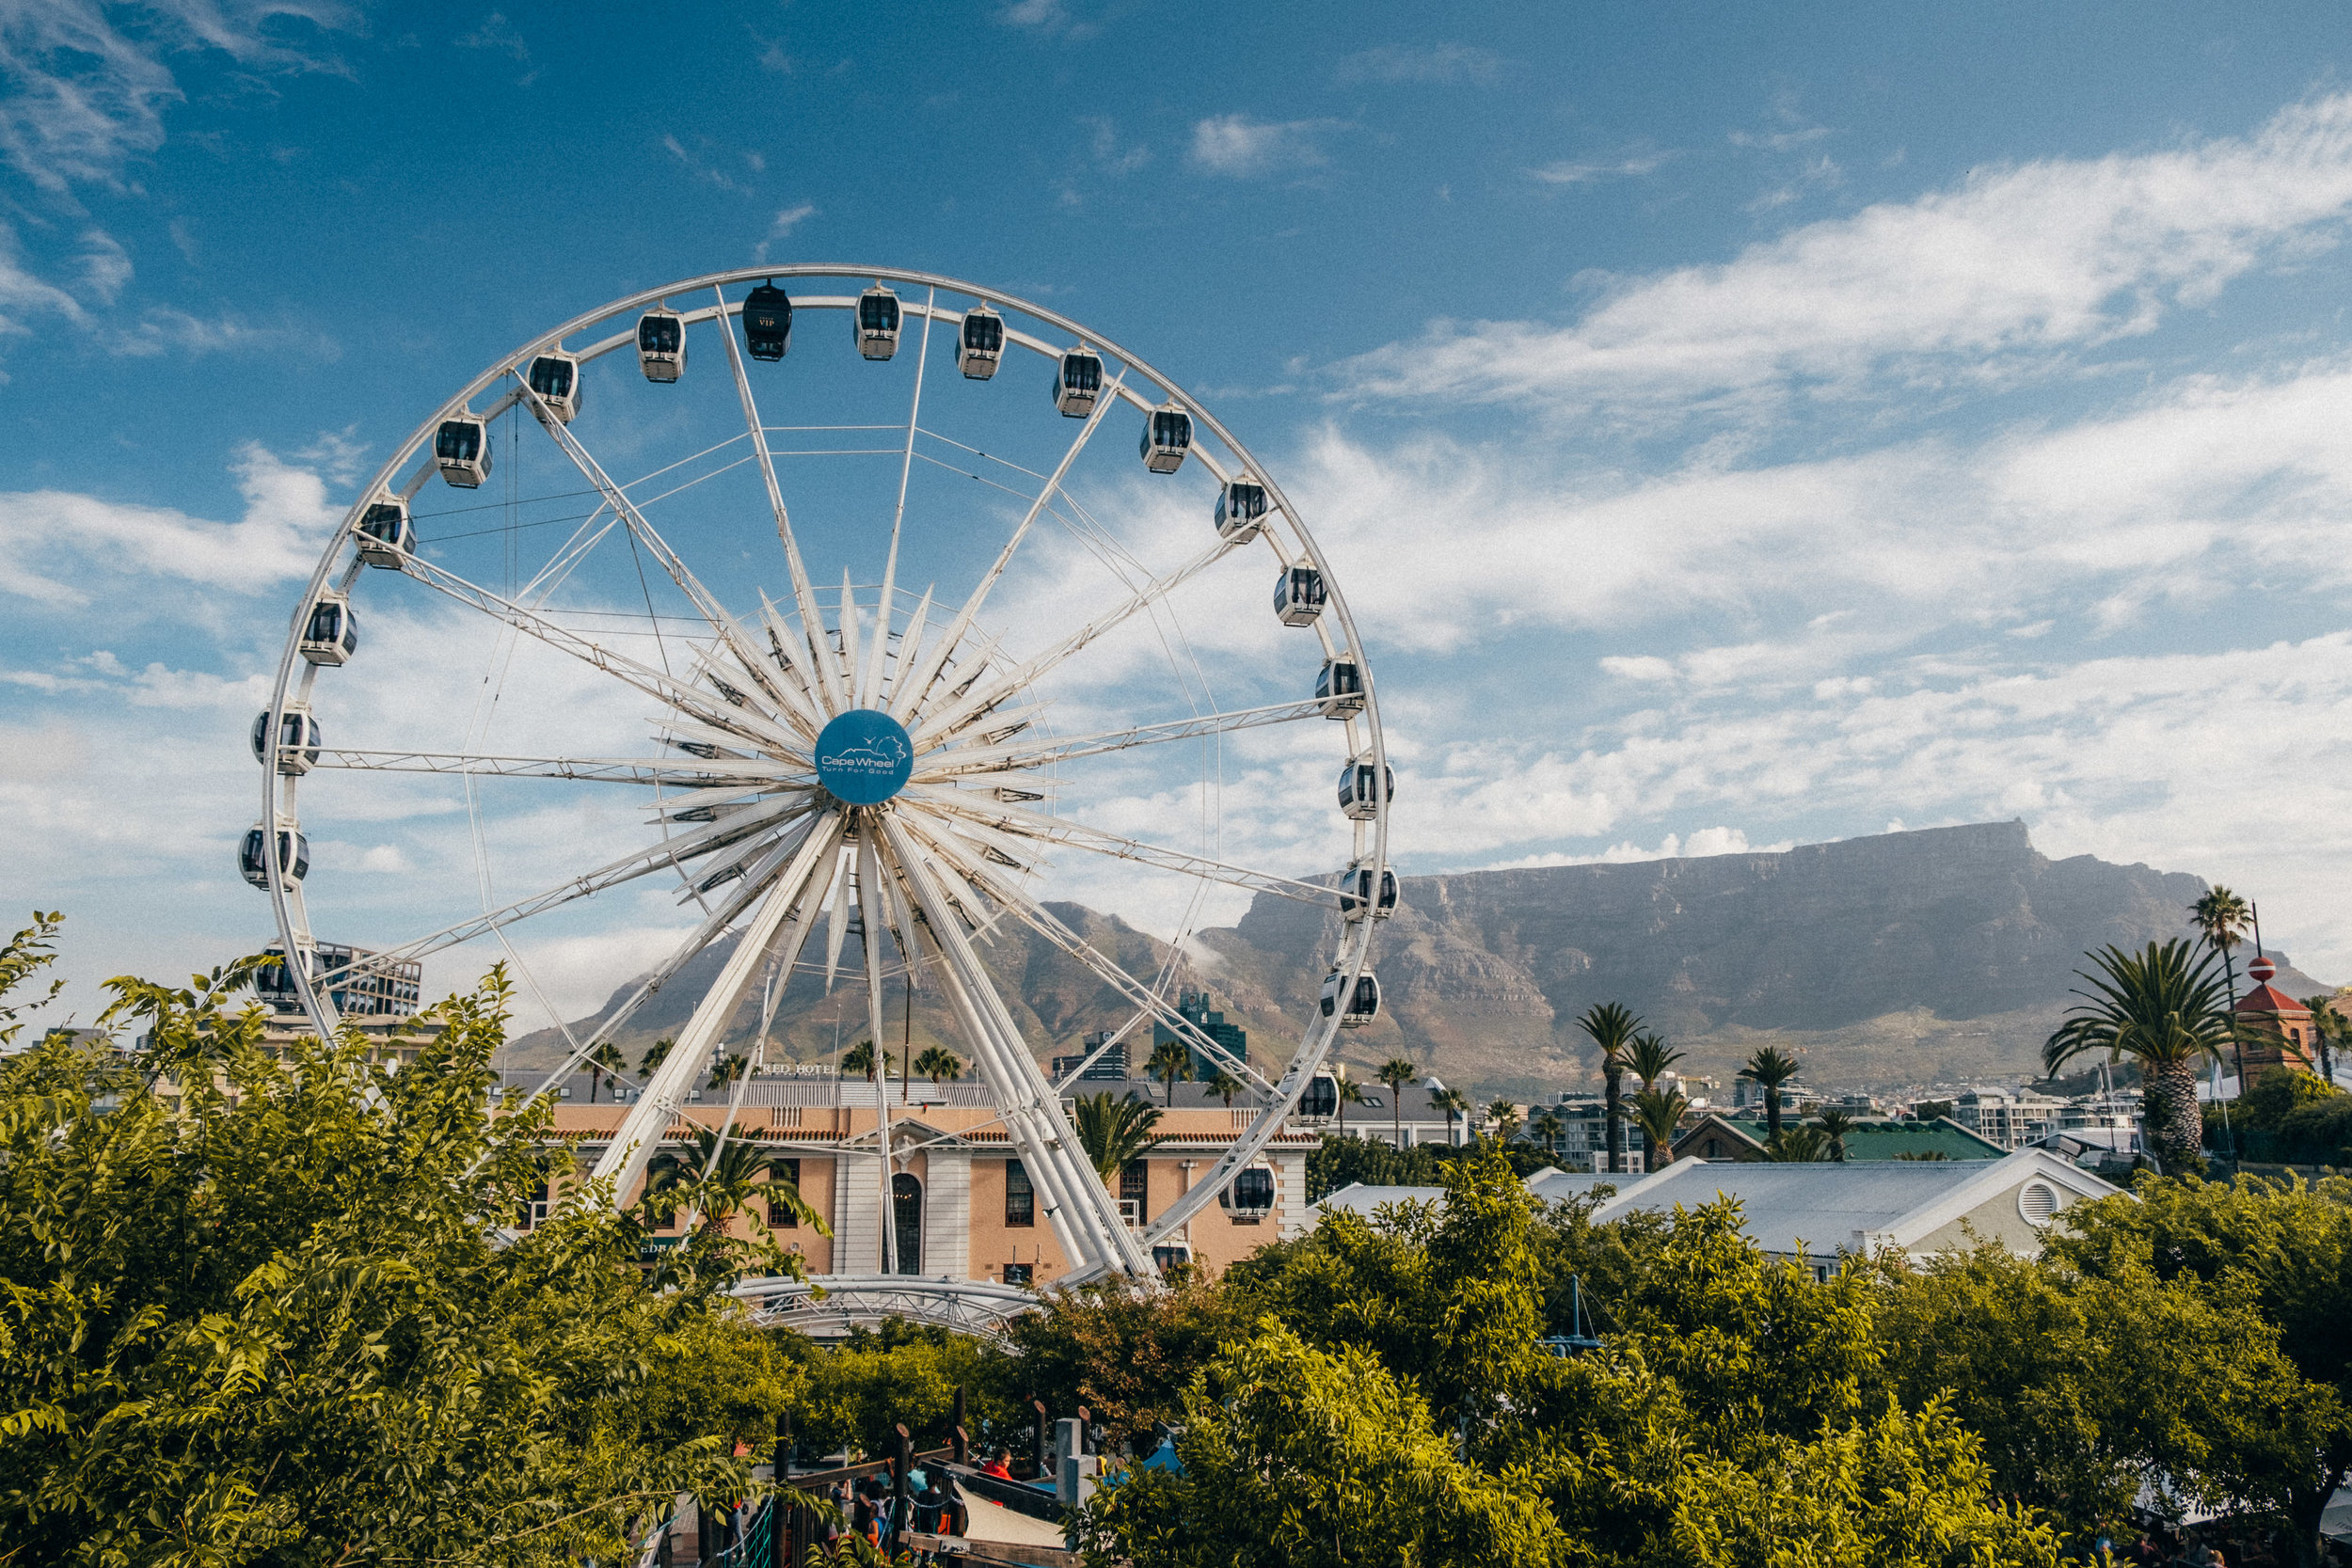 The Cape Wheel - Centred at the Waterfront. With 30 fully enclosed air conditional cabin that will take you 40 metres above the ground for an incredible experience.From each ticket that is sold R5 will go to the give for good foundation